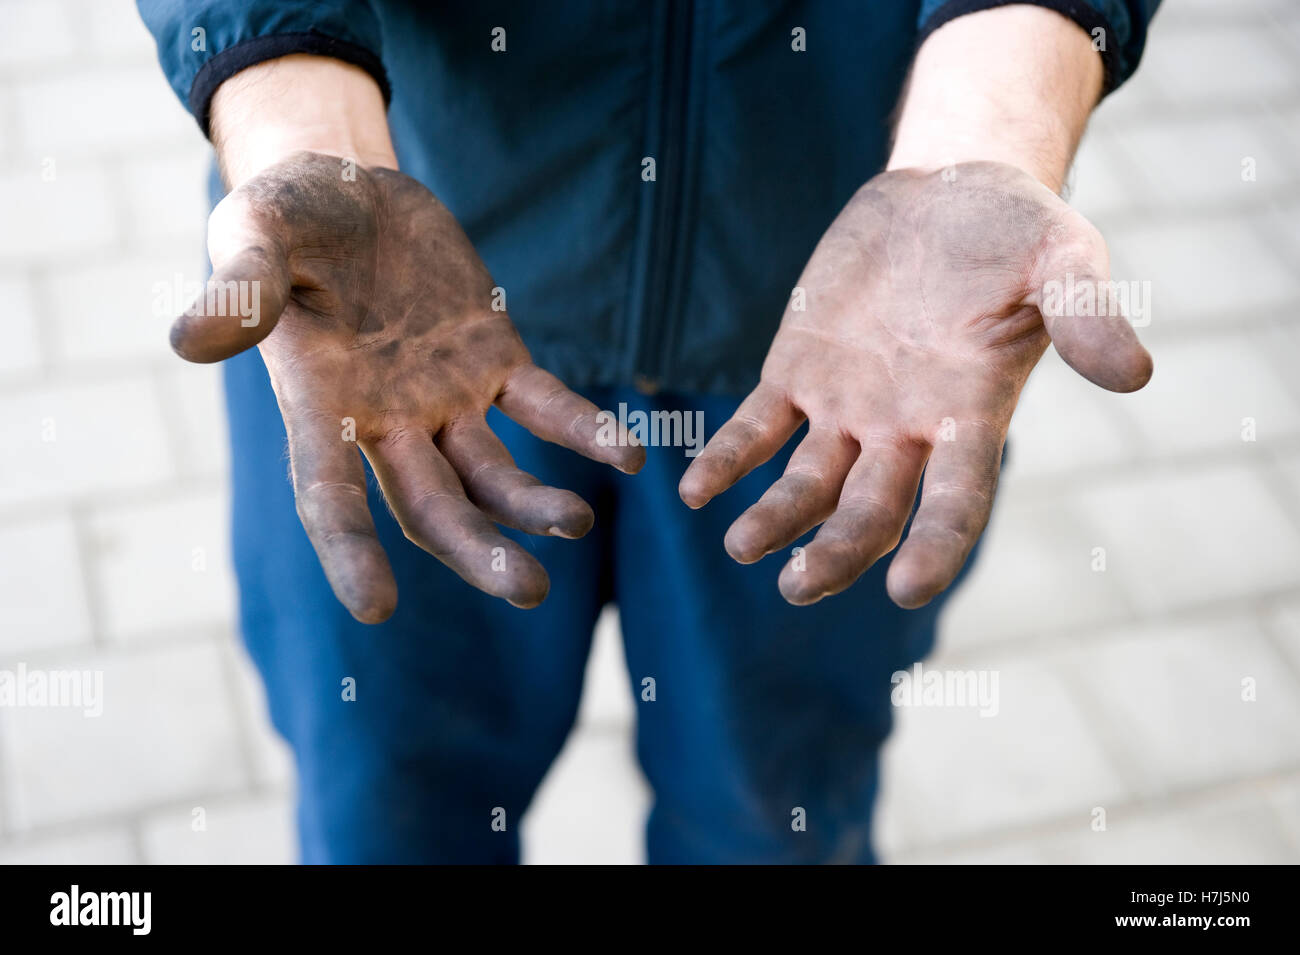 Manual labourer with dirty hands - Stock Image